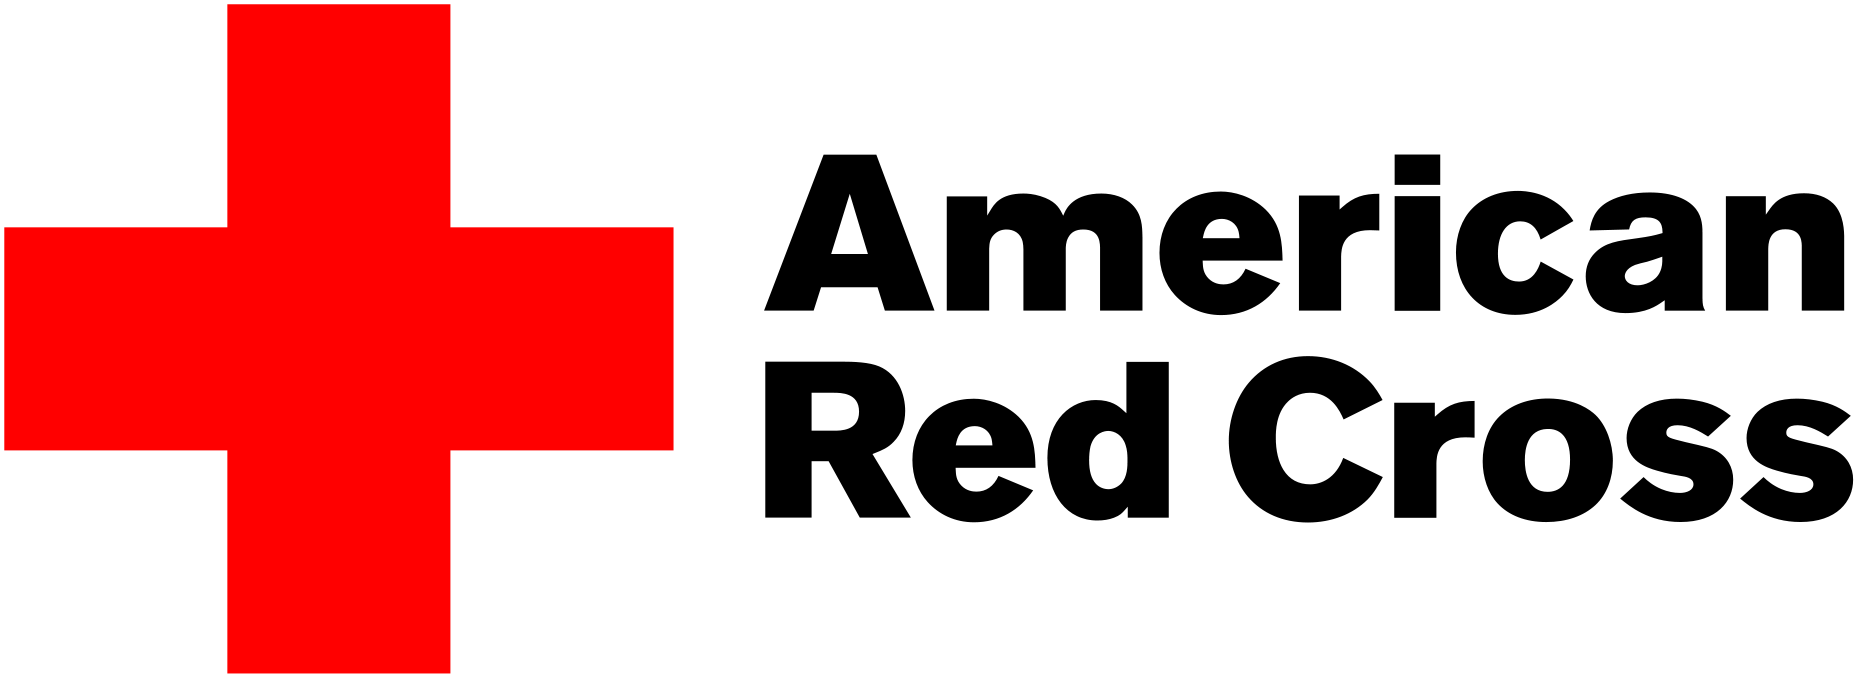 logo for the american red cross